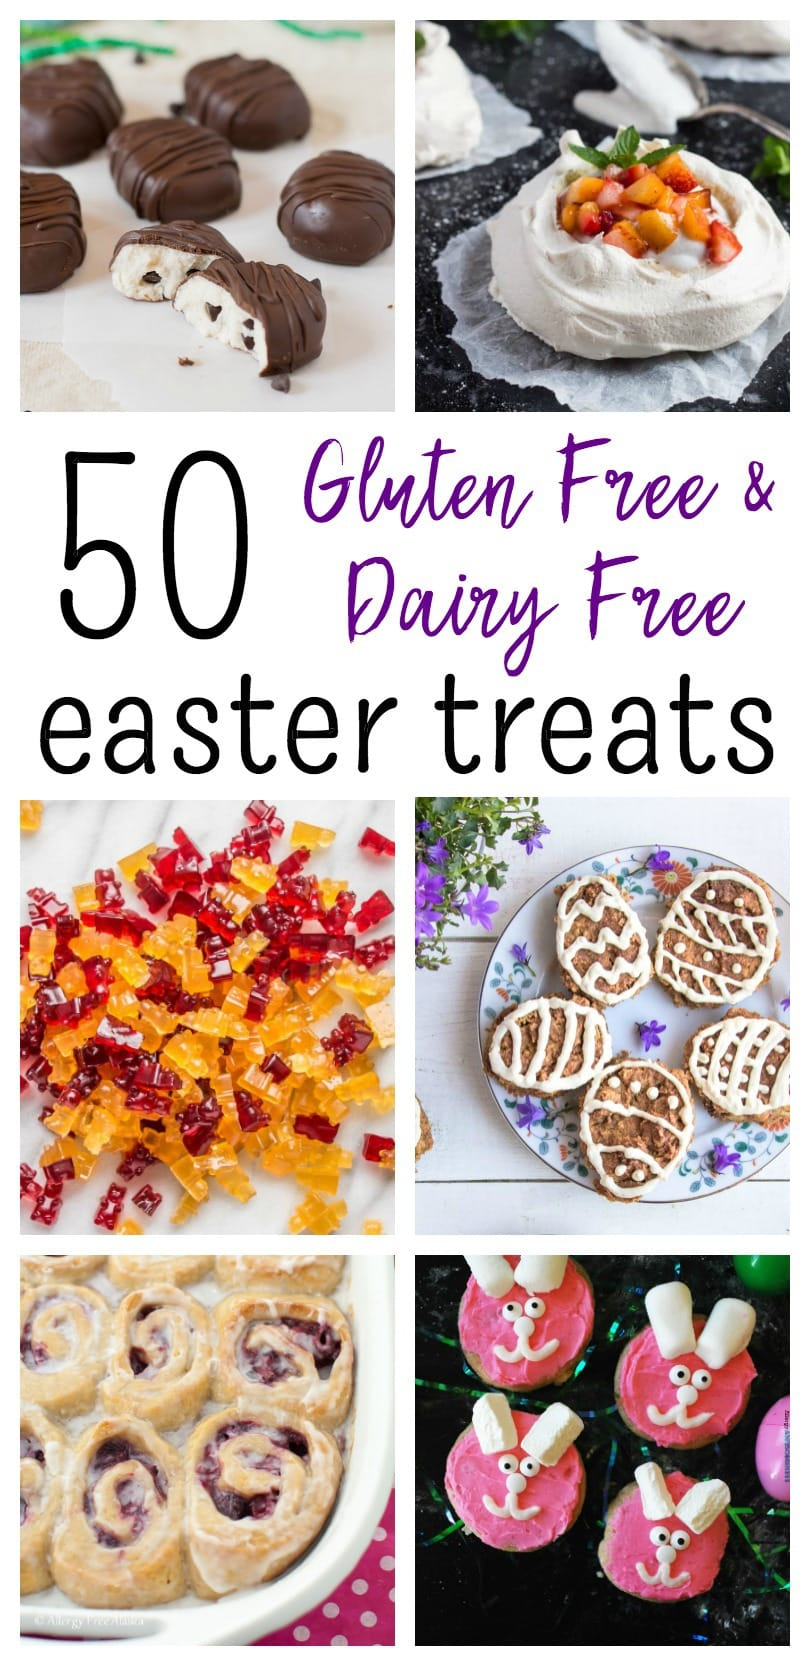 If you're looking for some last-minute Easter treats that are allergy-friendly, look no further: I've gathered together 50 gluten free and dairy free Easter treats to celebrate spring! @TheFitCookie